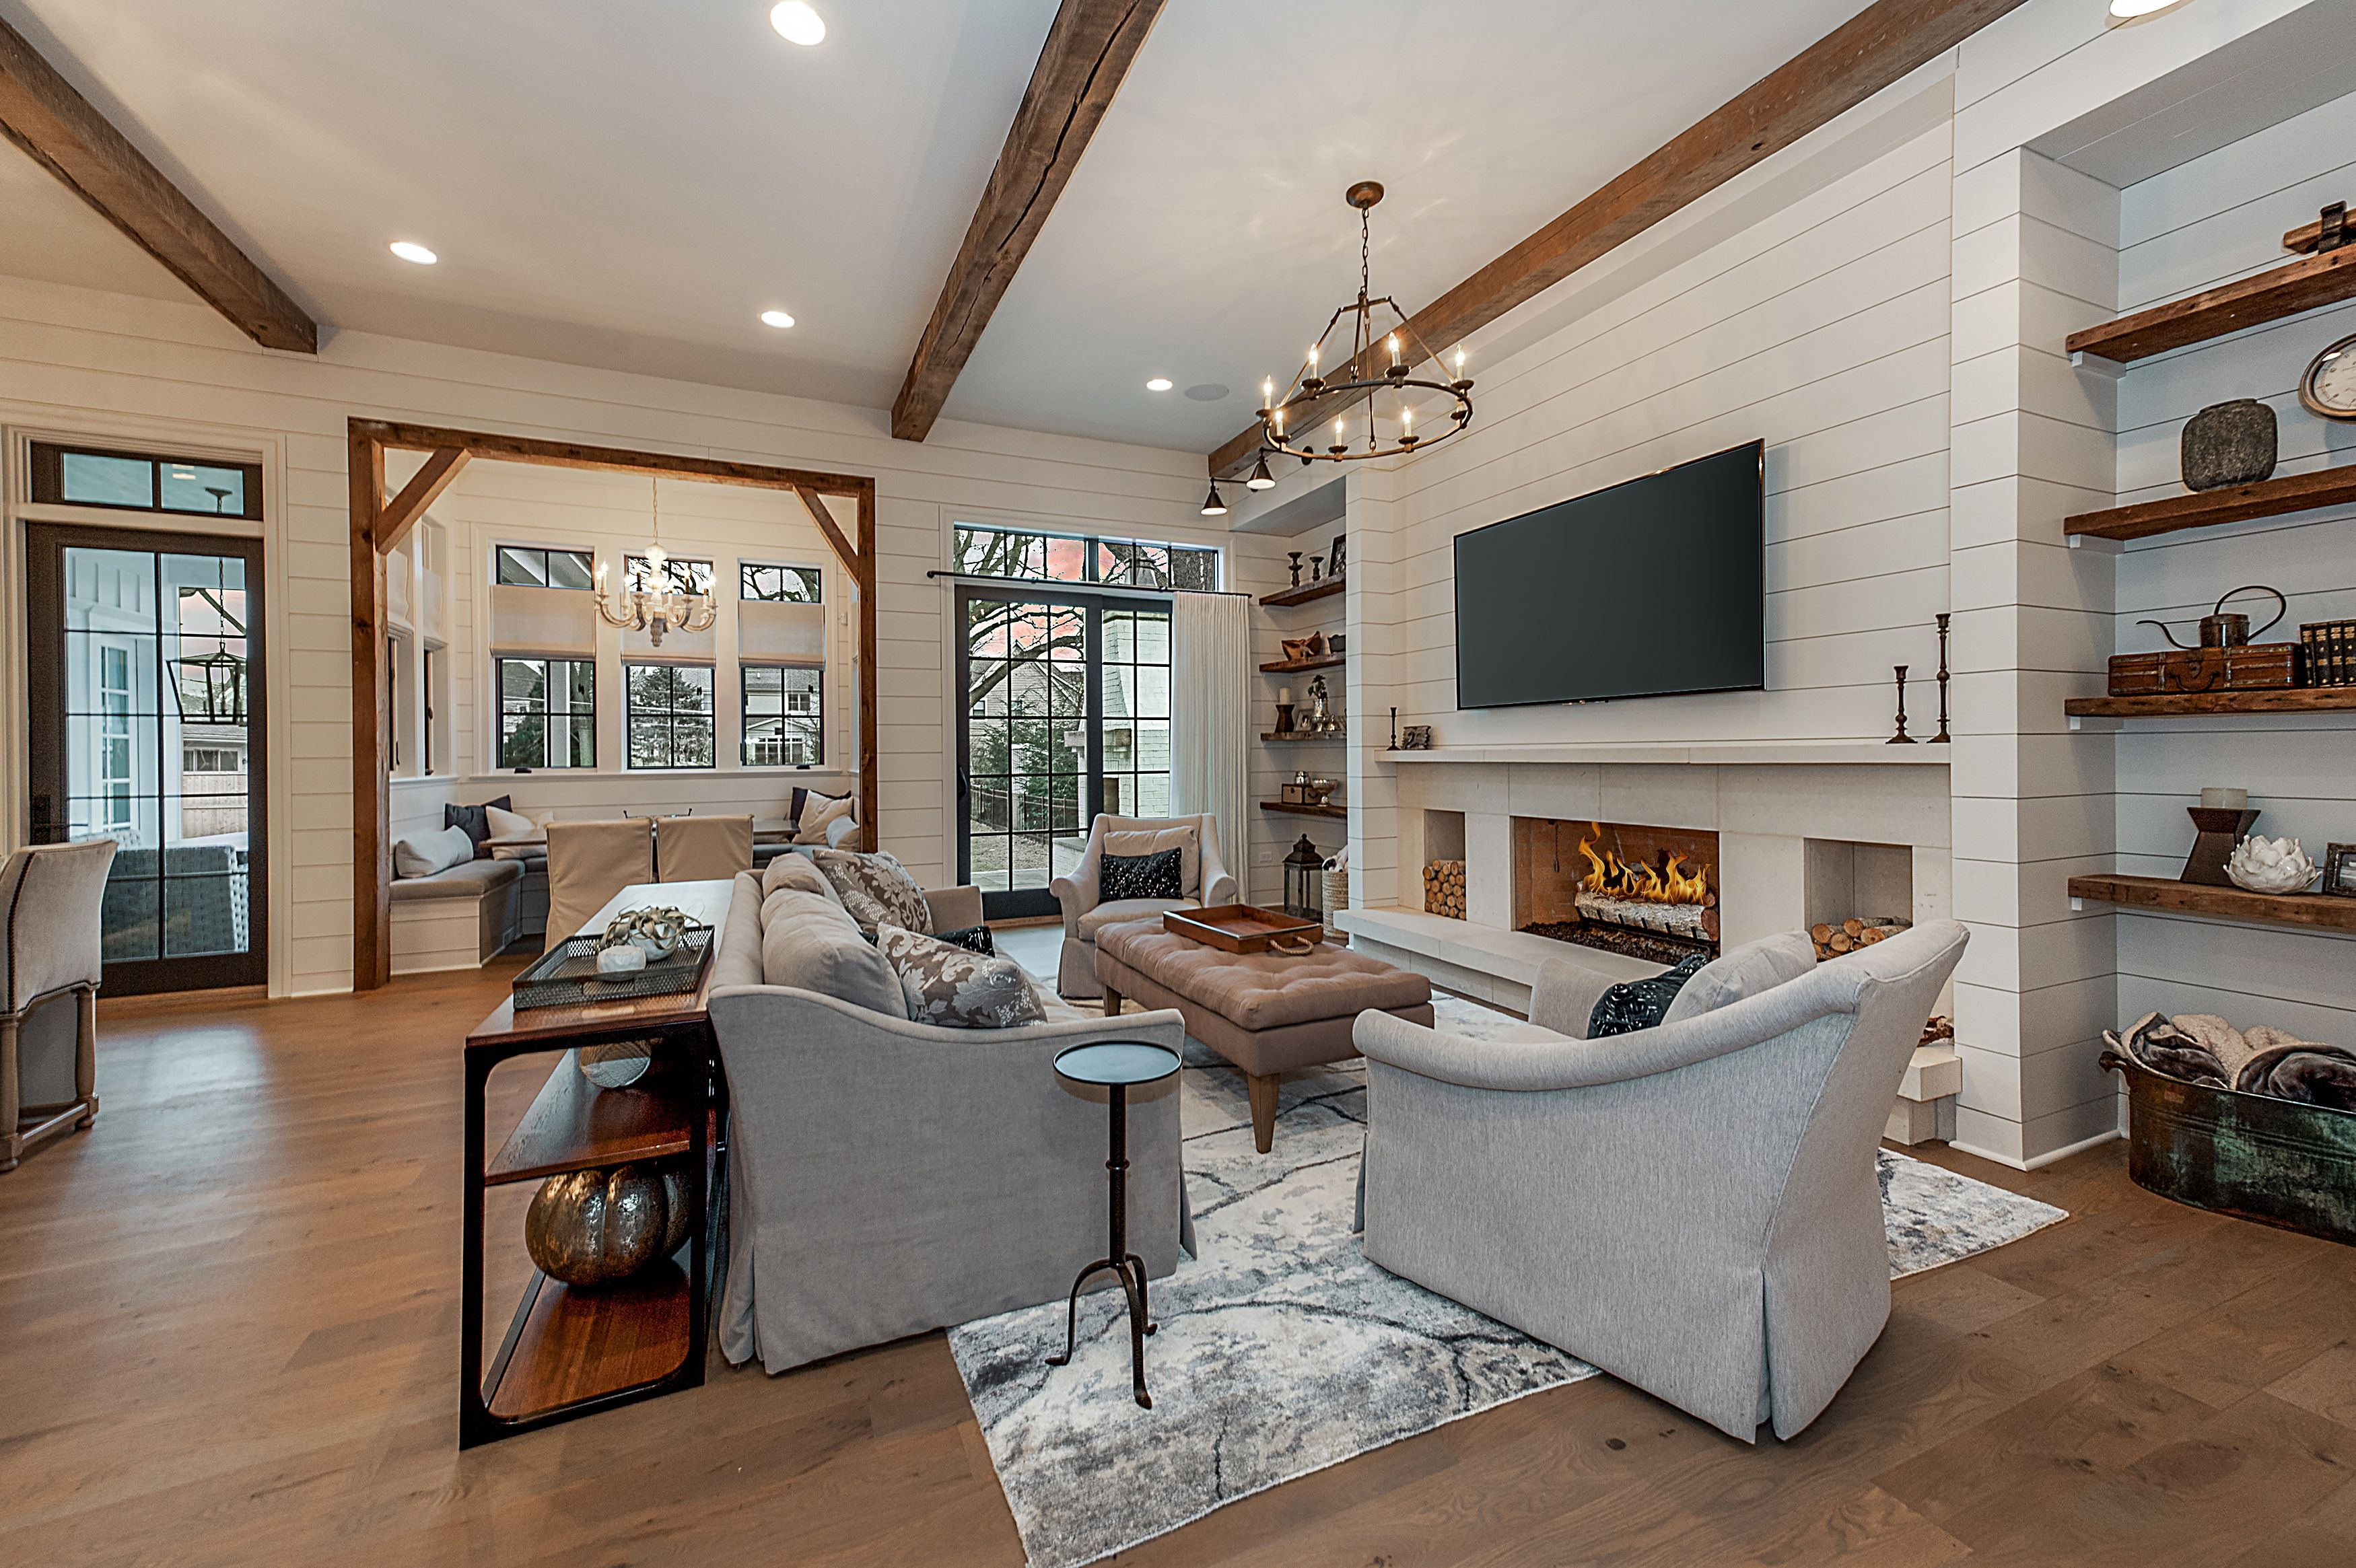 Rustic Modern Family Room With Shiplap Detailing, Reclaimed Wood Beams